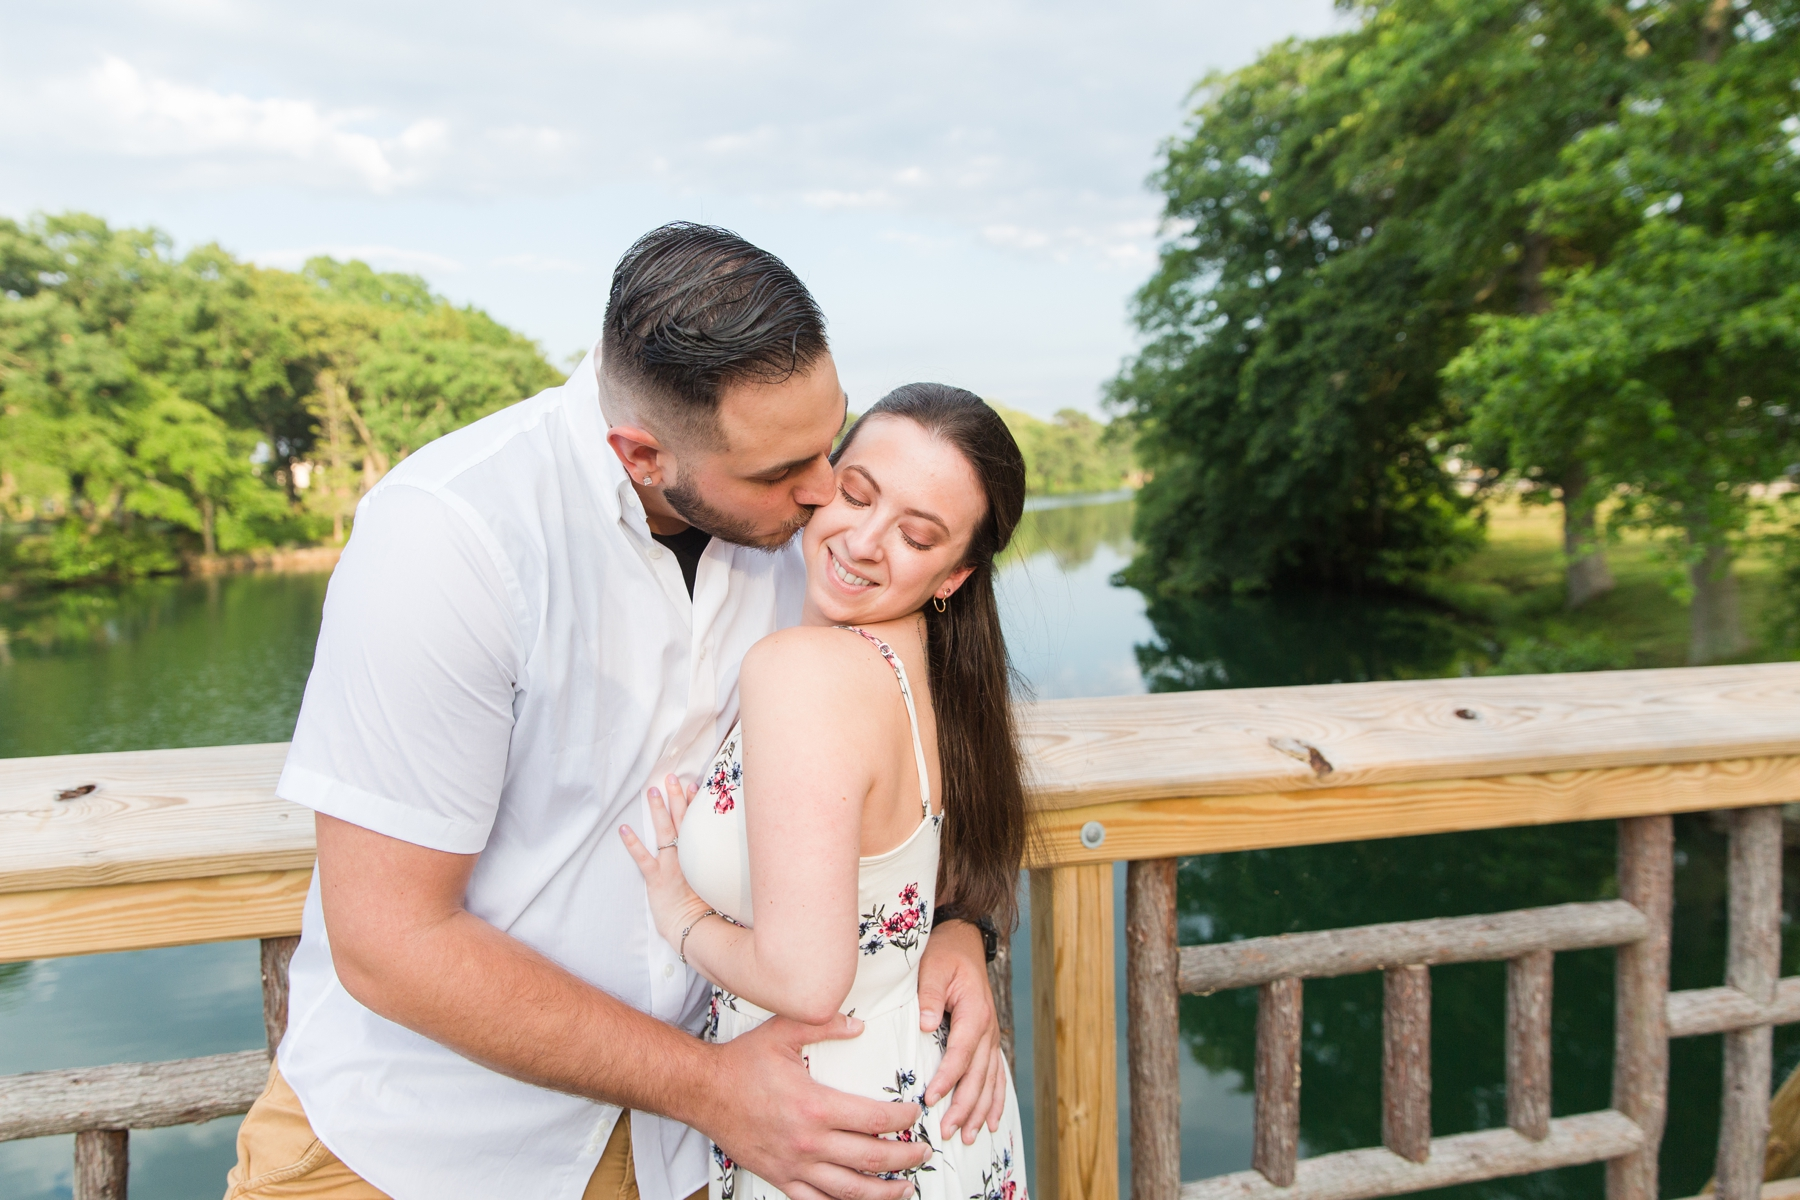 Rebecca + George's Park and Beach Engagement Photography at Spring Lake